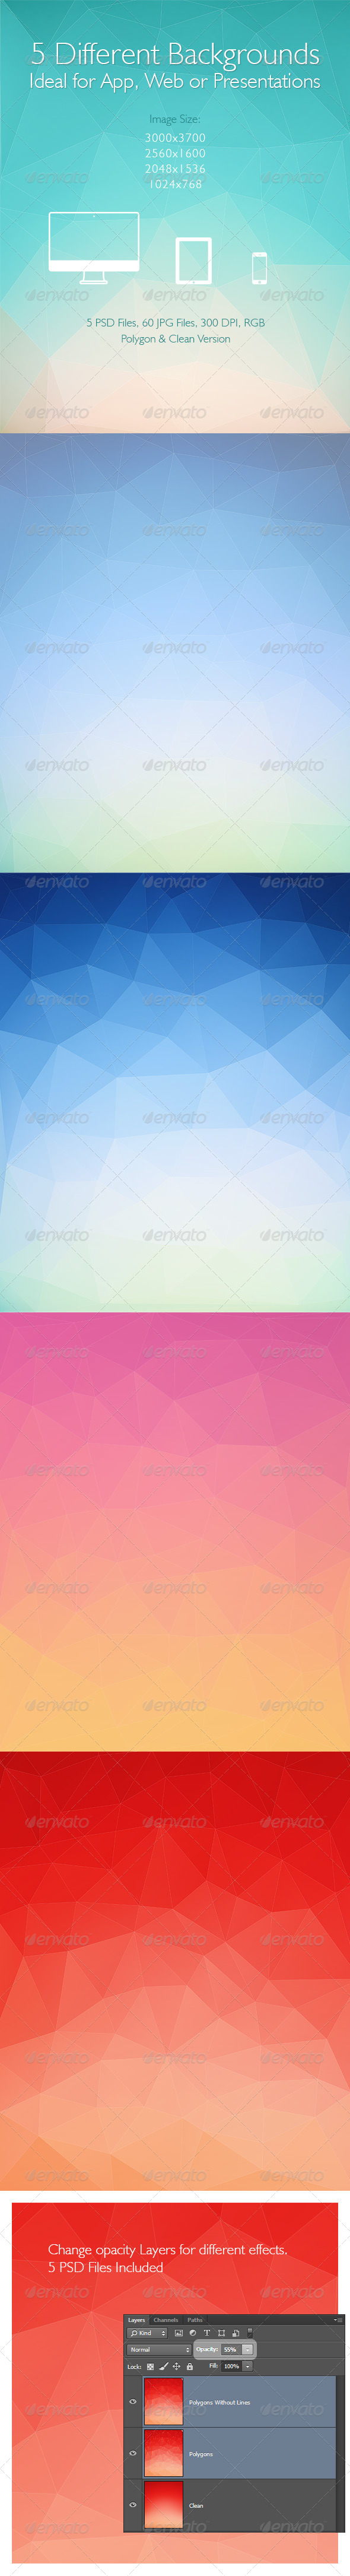 GraphicRiver Polygon Backgrounds 5 Different Images 6711929